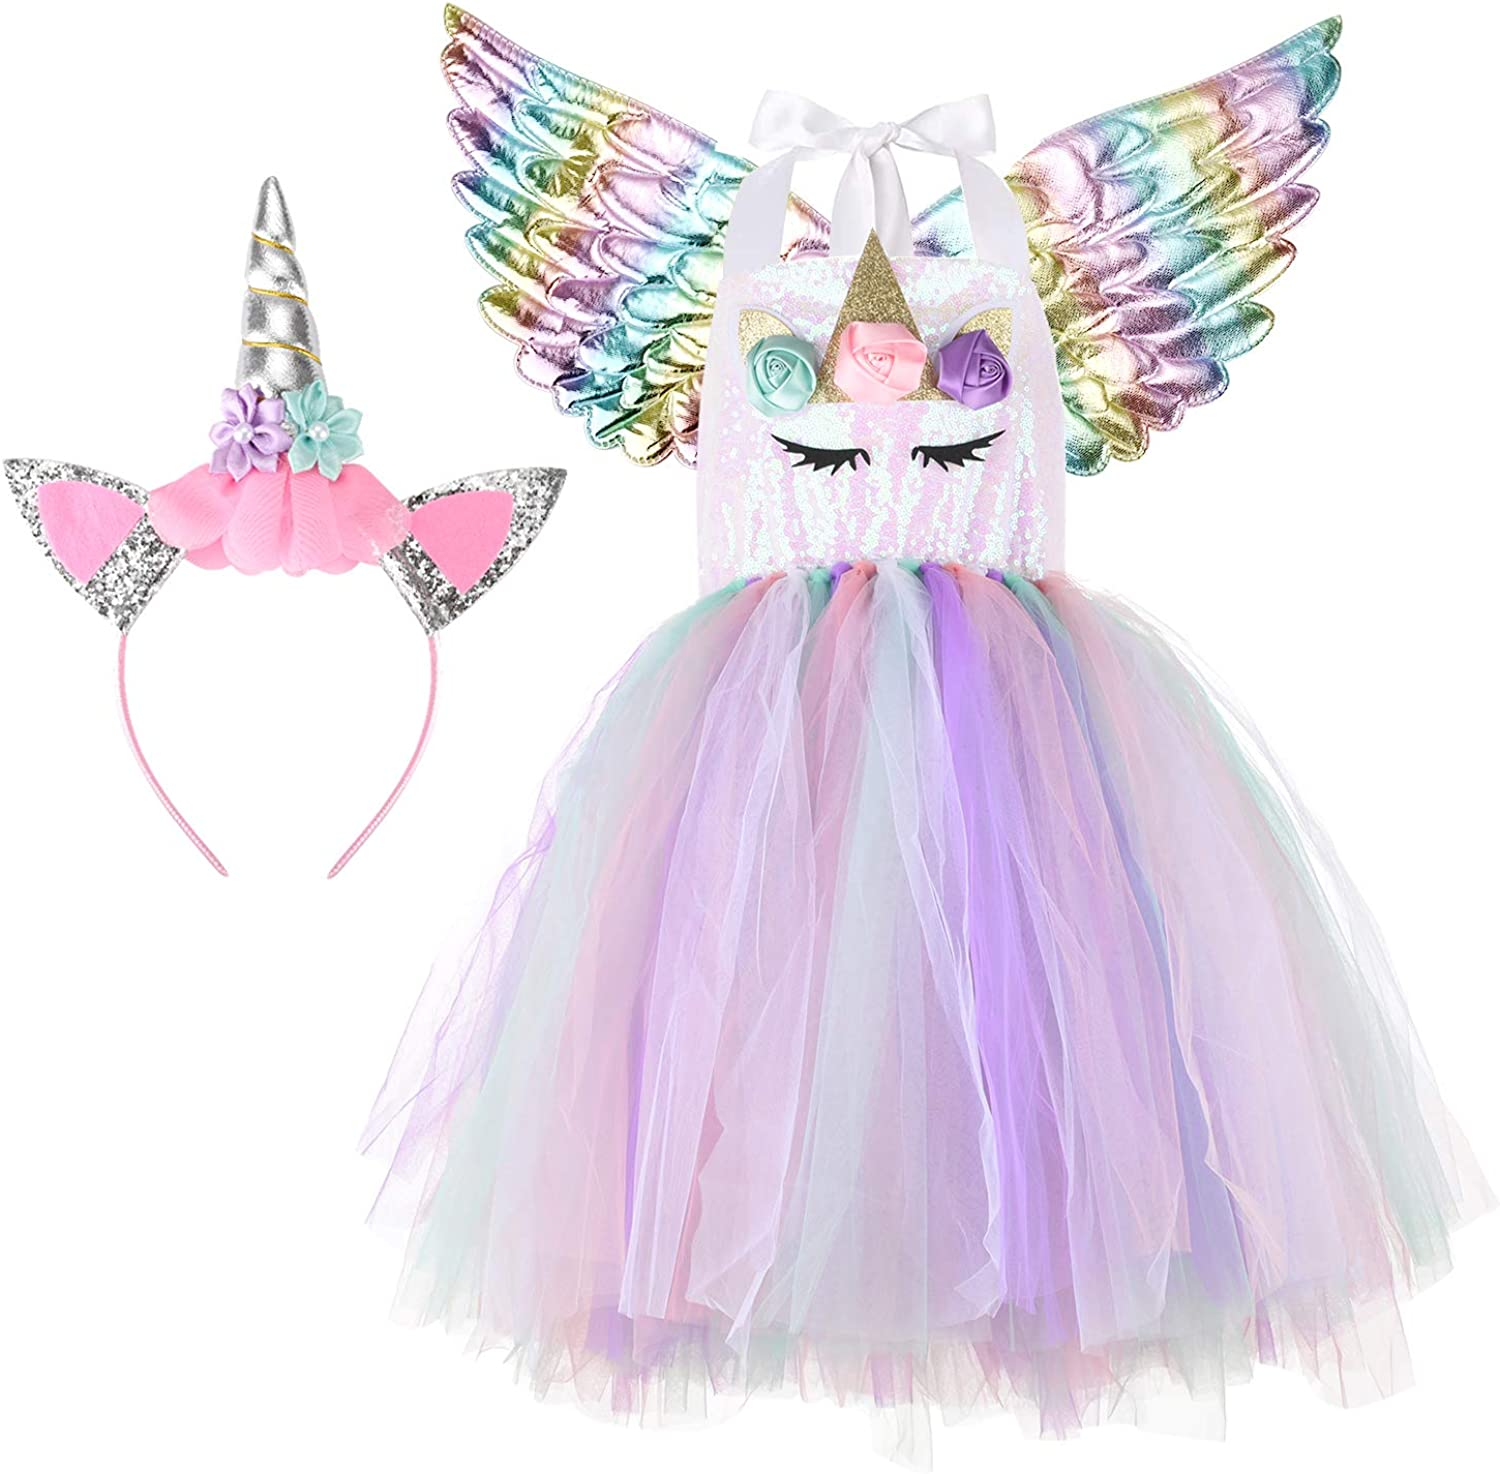 Halloween Unicorn Costumes for Girls with Headband and Wings: Clothing